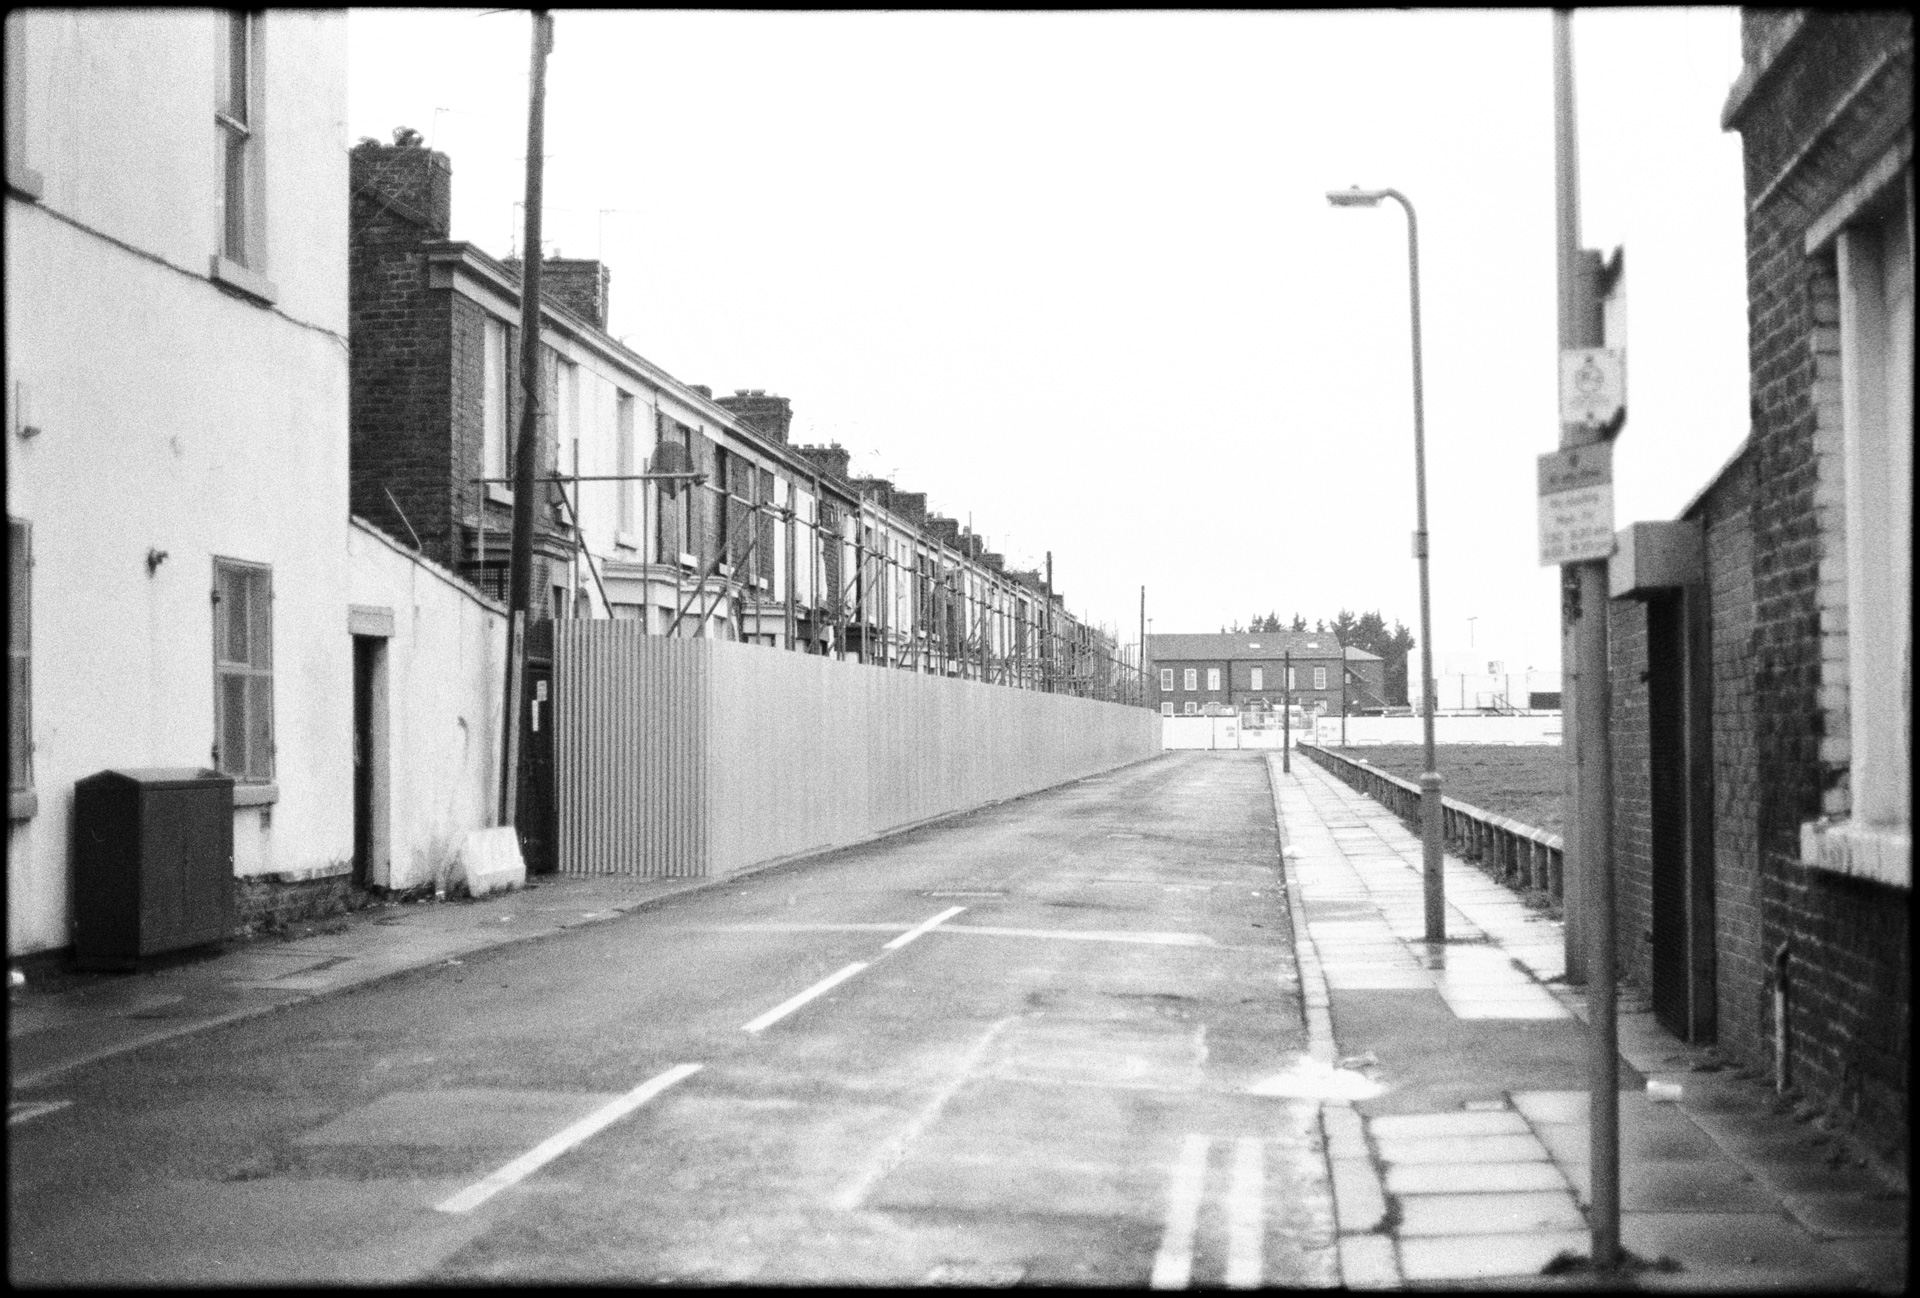 March 2013 (shot on black and white film) - a row of houses on Janet Street before demolishment.